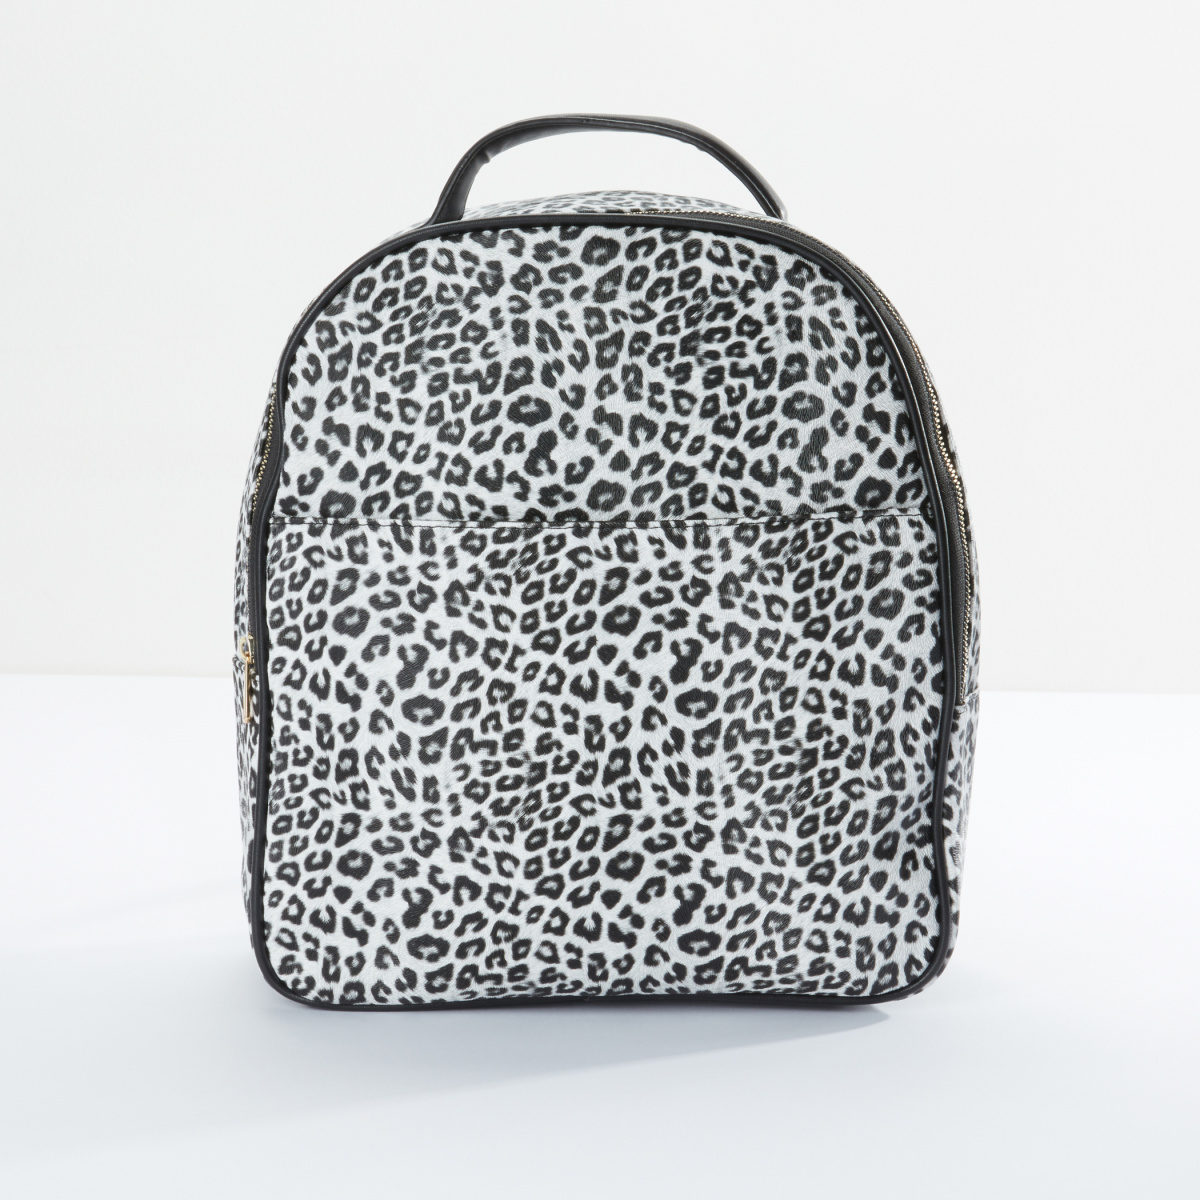 Leopard Printed Backpack with Zip Closure and Adjustable Straps